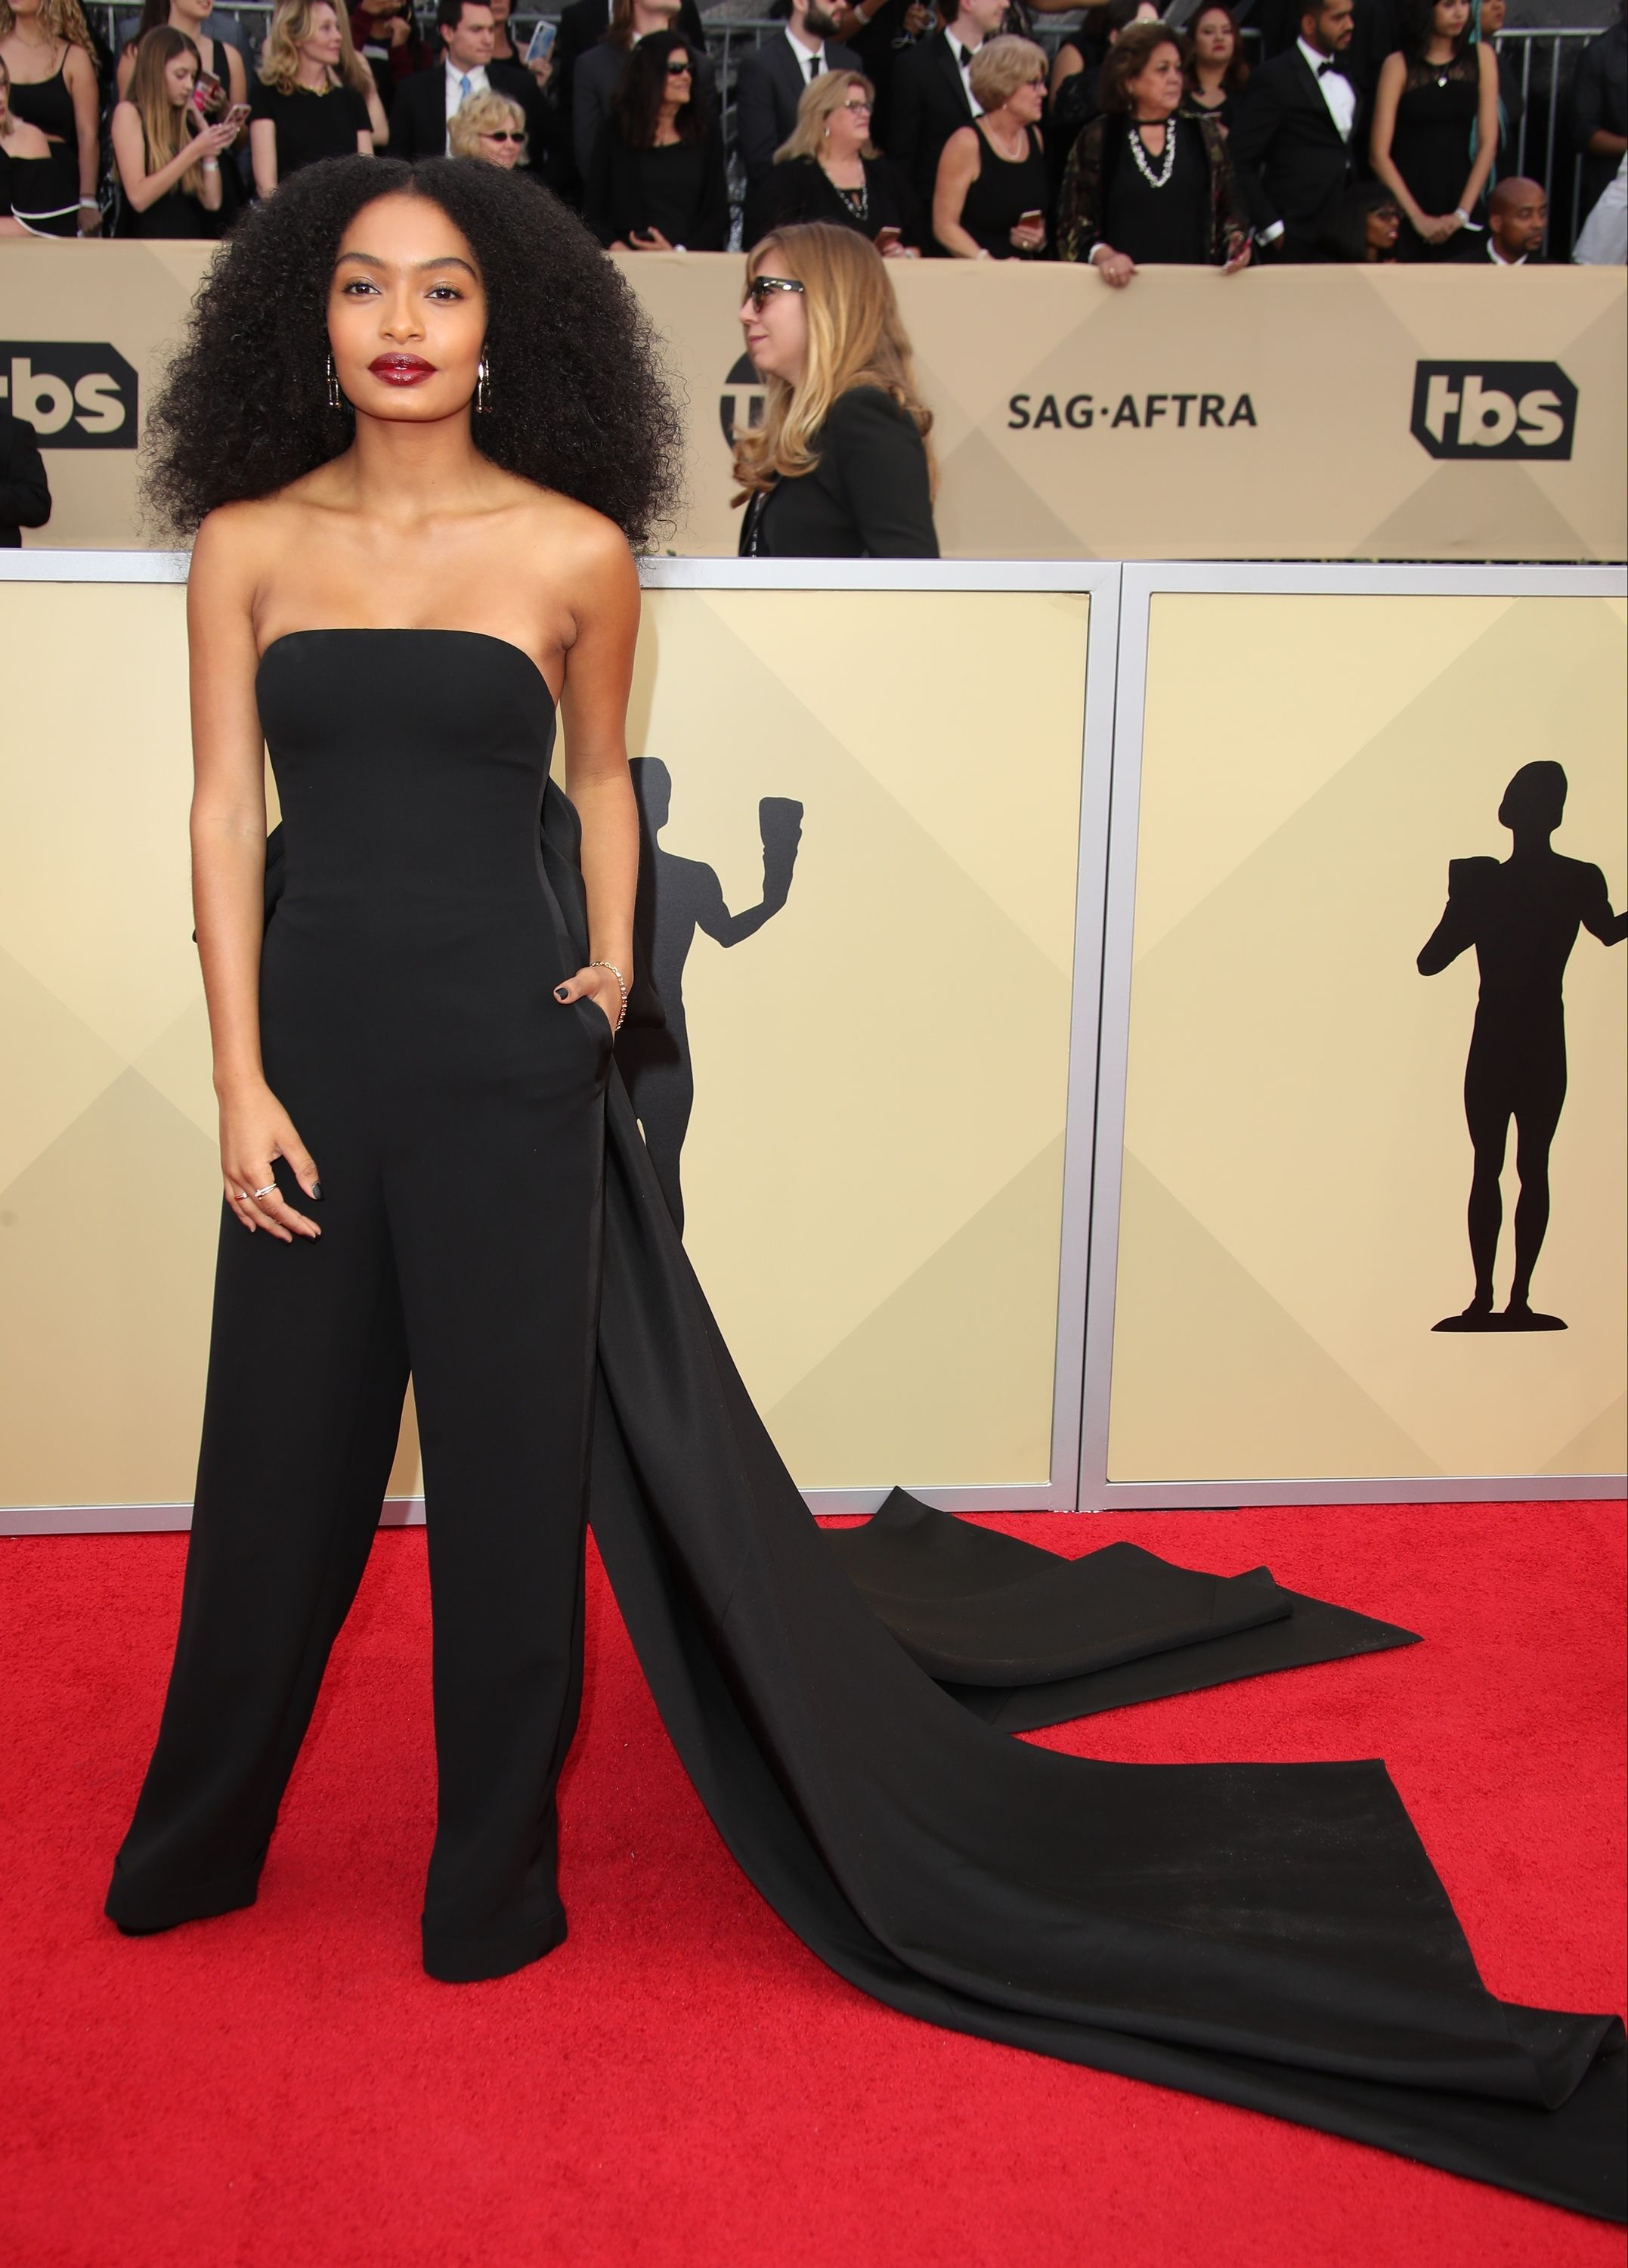 The starlet picked a bespoke Ralph Lauren strapless jumpsuit with an oversized bow at the back for the 2018 Screen Actors Guild Awards.